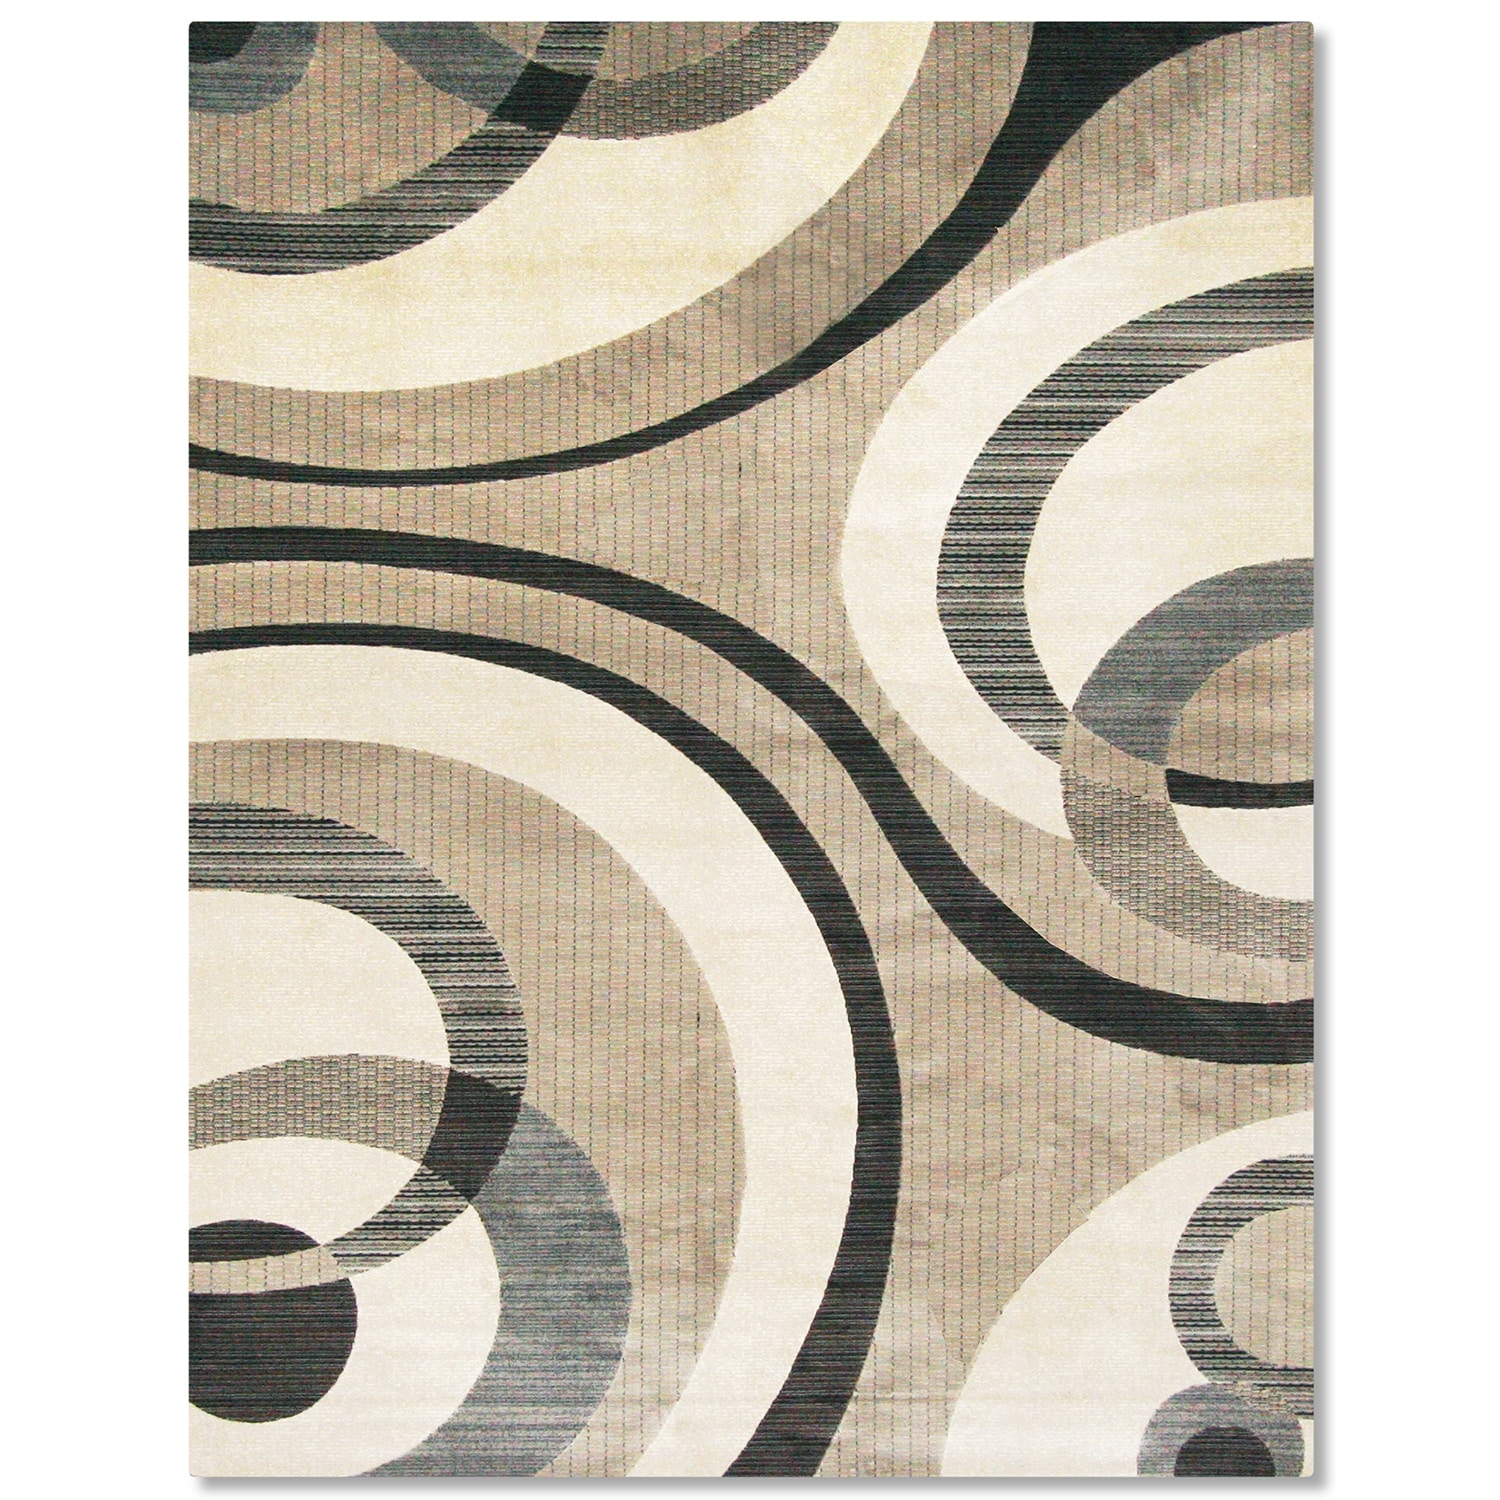 Sonoma bennett area rug 8 39 x 10 39 value city furniture for Living room rugs 8 by 10